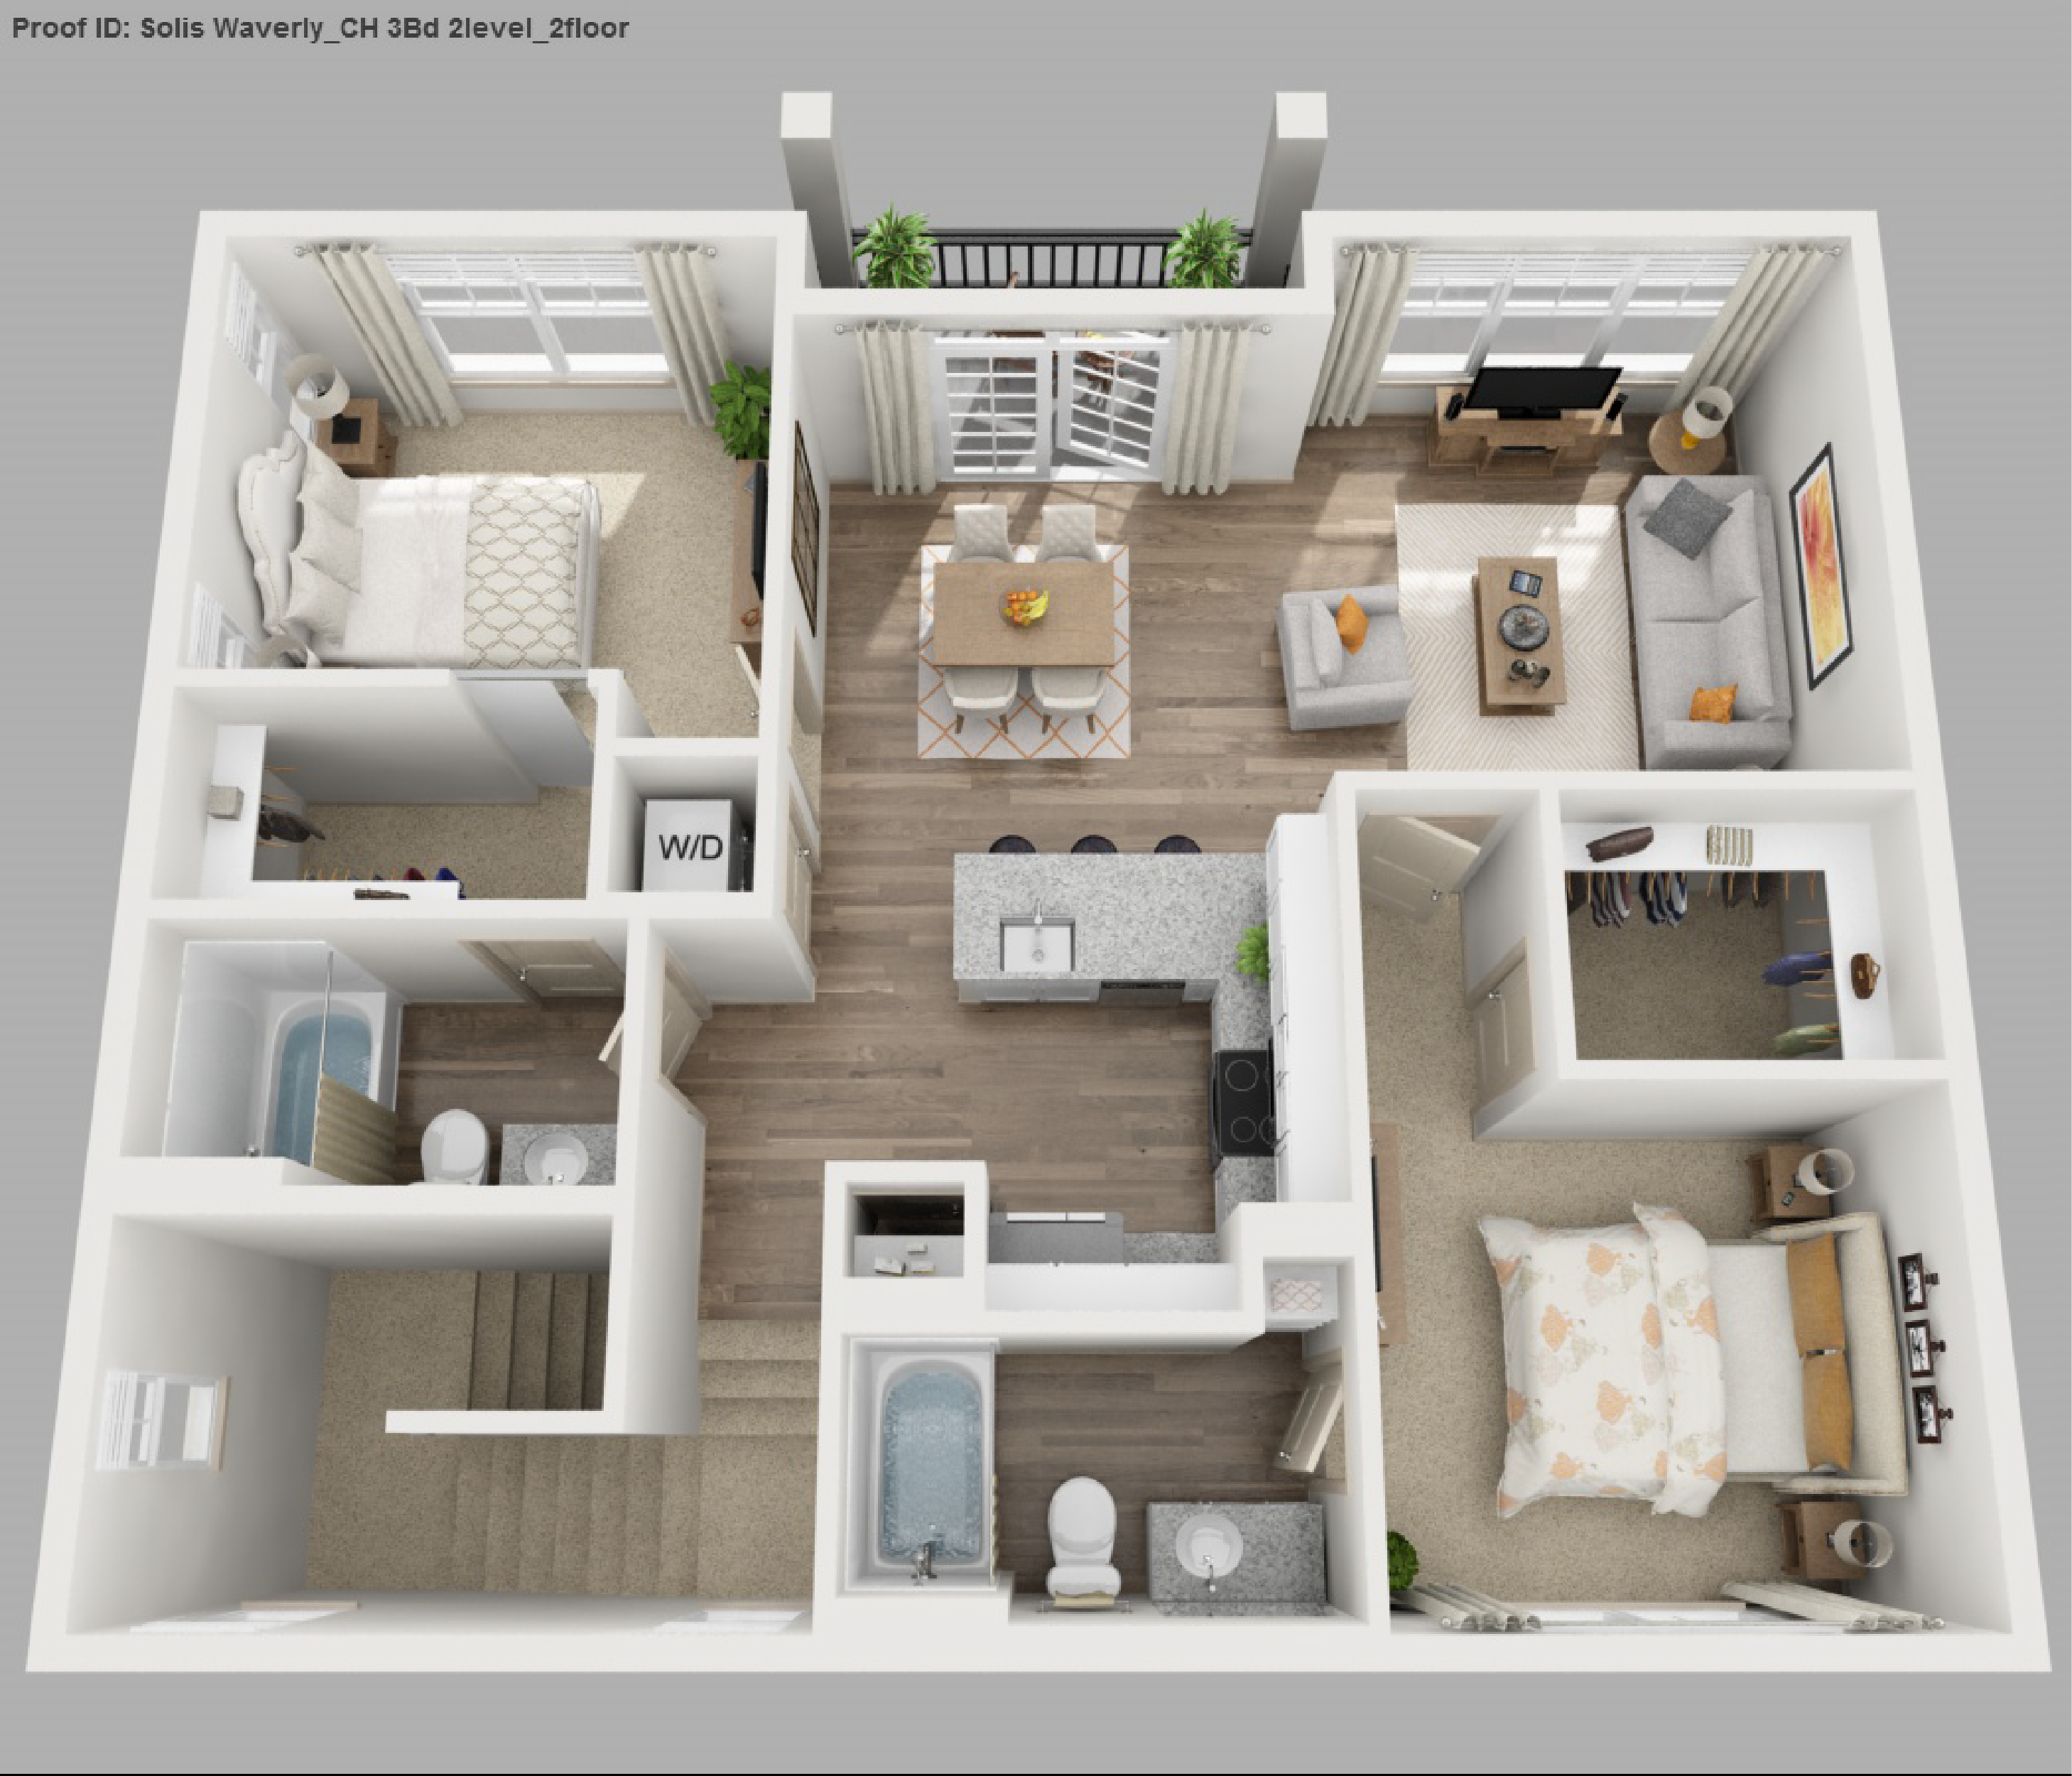 Solis apartments floorplans waverly for 3 bedroom